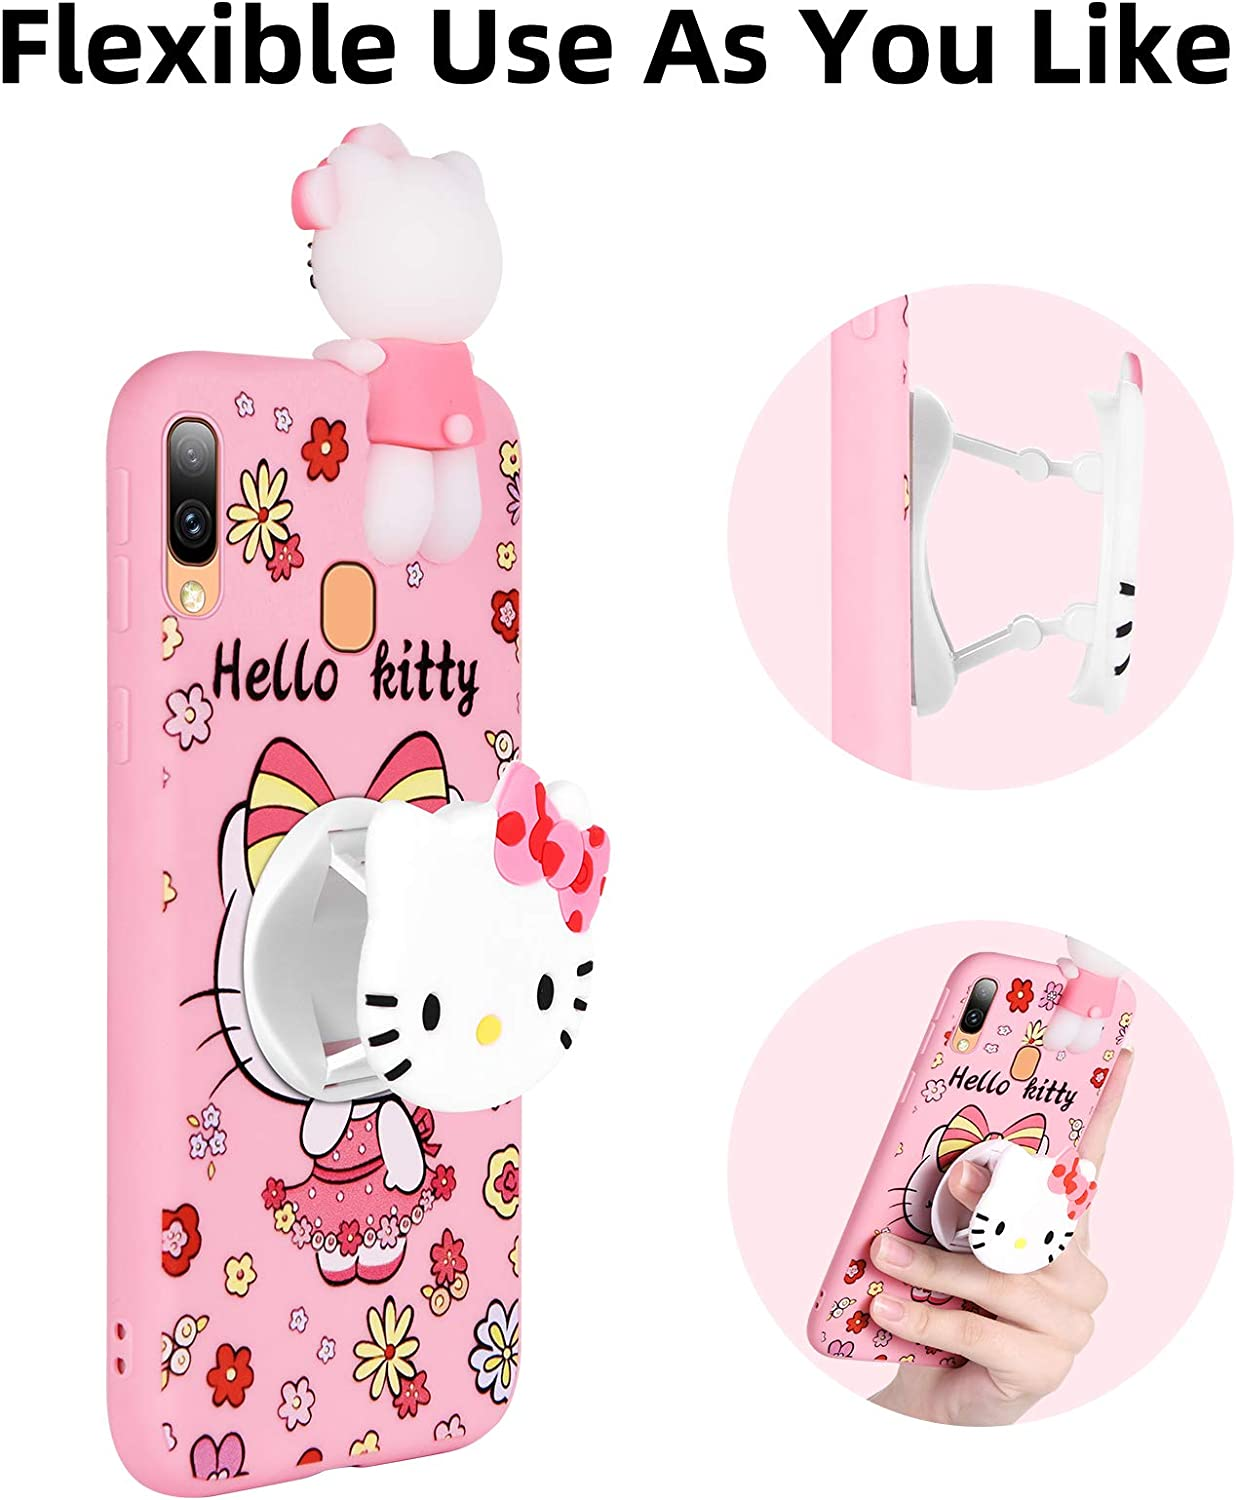 HikerClub Galaxy A01 Case Hello Kitty 3D Cartoon Case with Pop Out Phone Stand Grip Holder and Detachable Long Lanyard Neck Strap Band Soft Lovely Case for Children Kids Girls Hello Kitty, A01